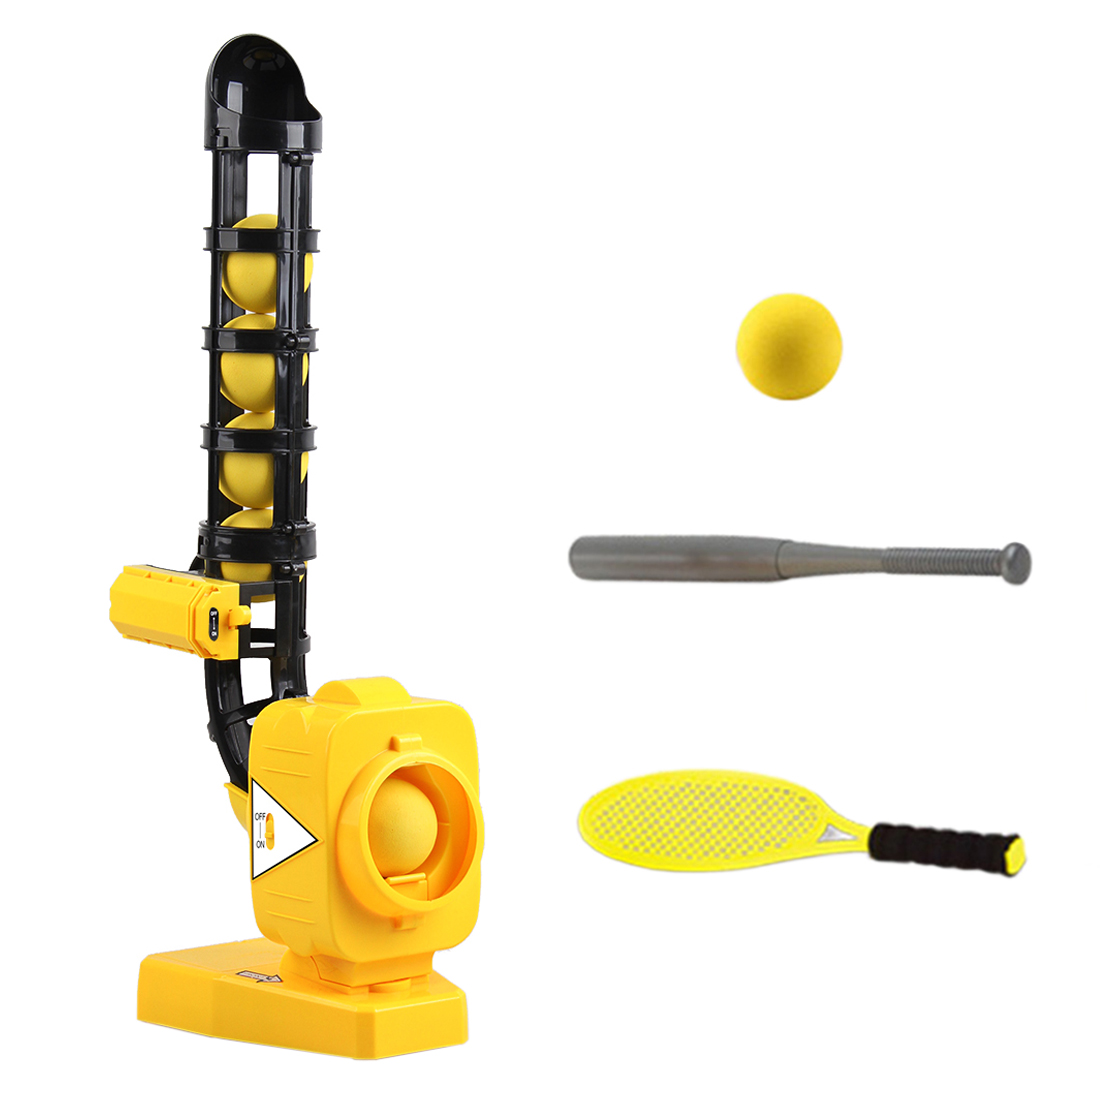 2-in-1 Outdoor Sports Baseball Automatic Ball Machine Pitching Machine Practice Tennis Batting Ball Pitcher For Children